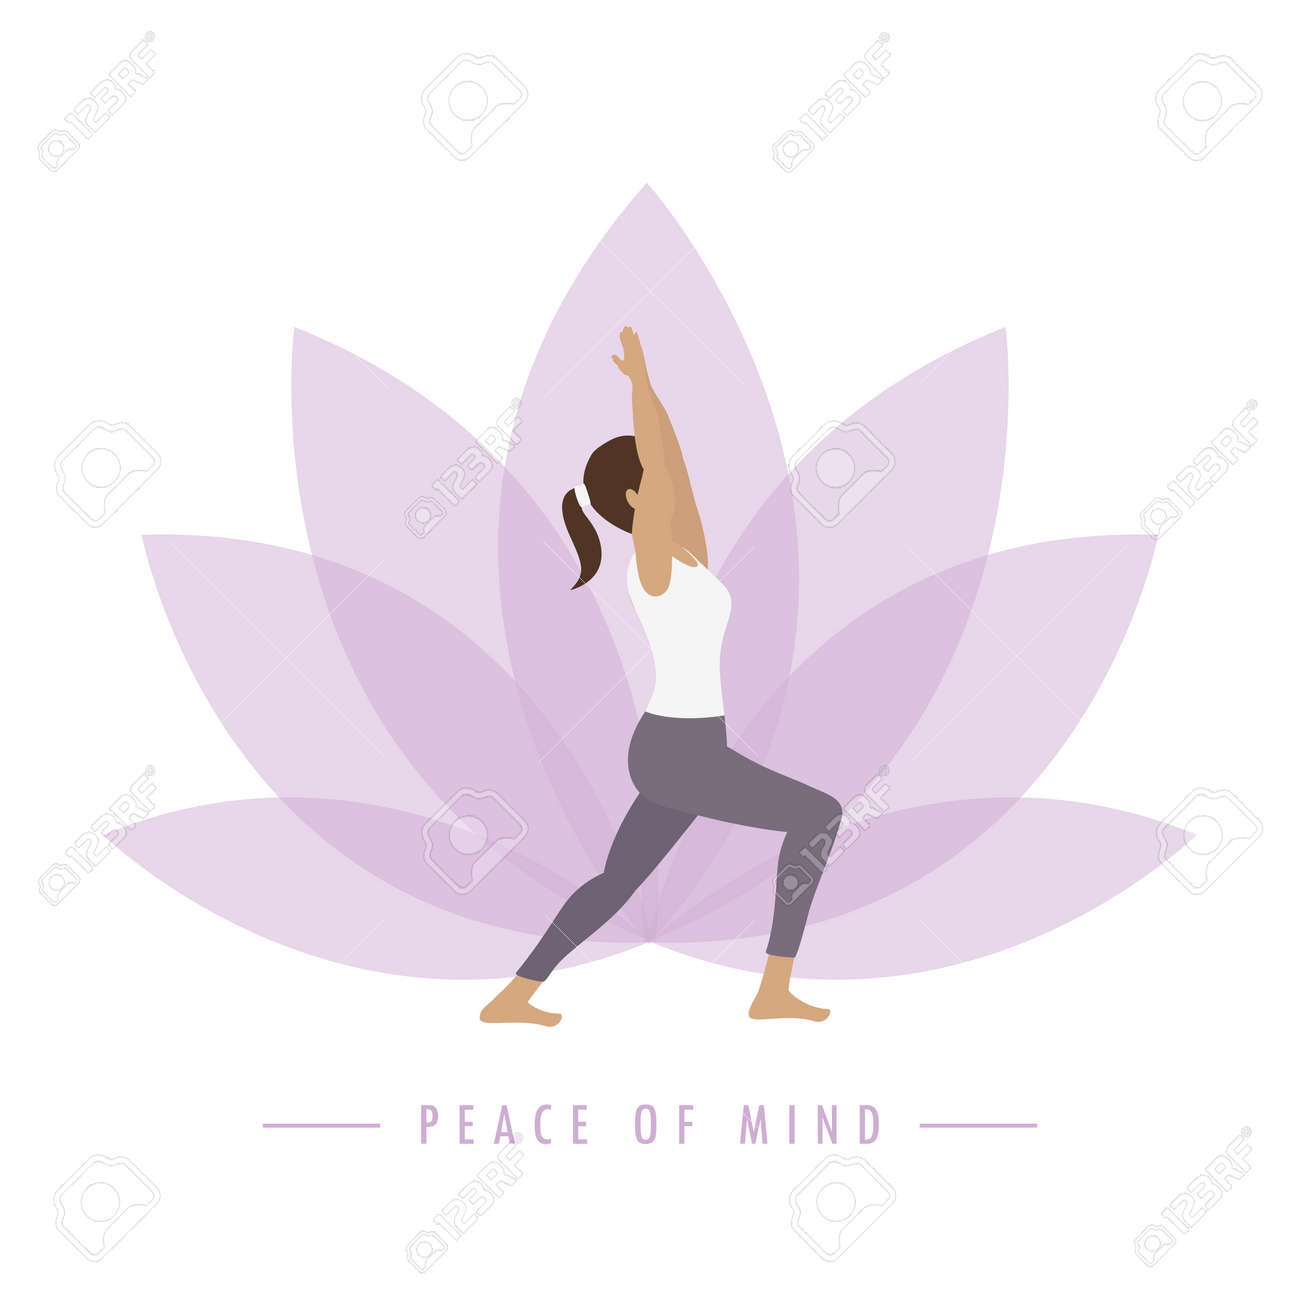 yoga girl on colorful lotus flower background peace of mind - 169841382